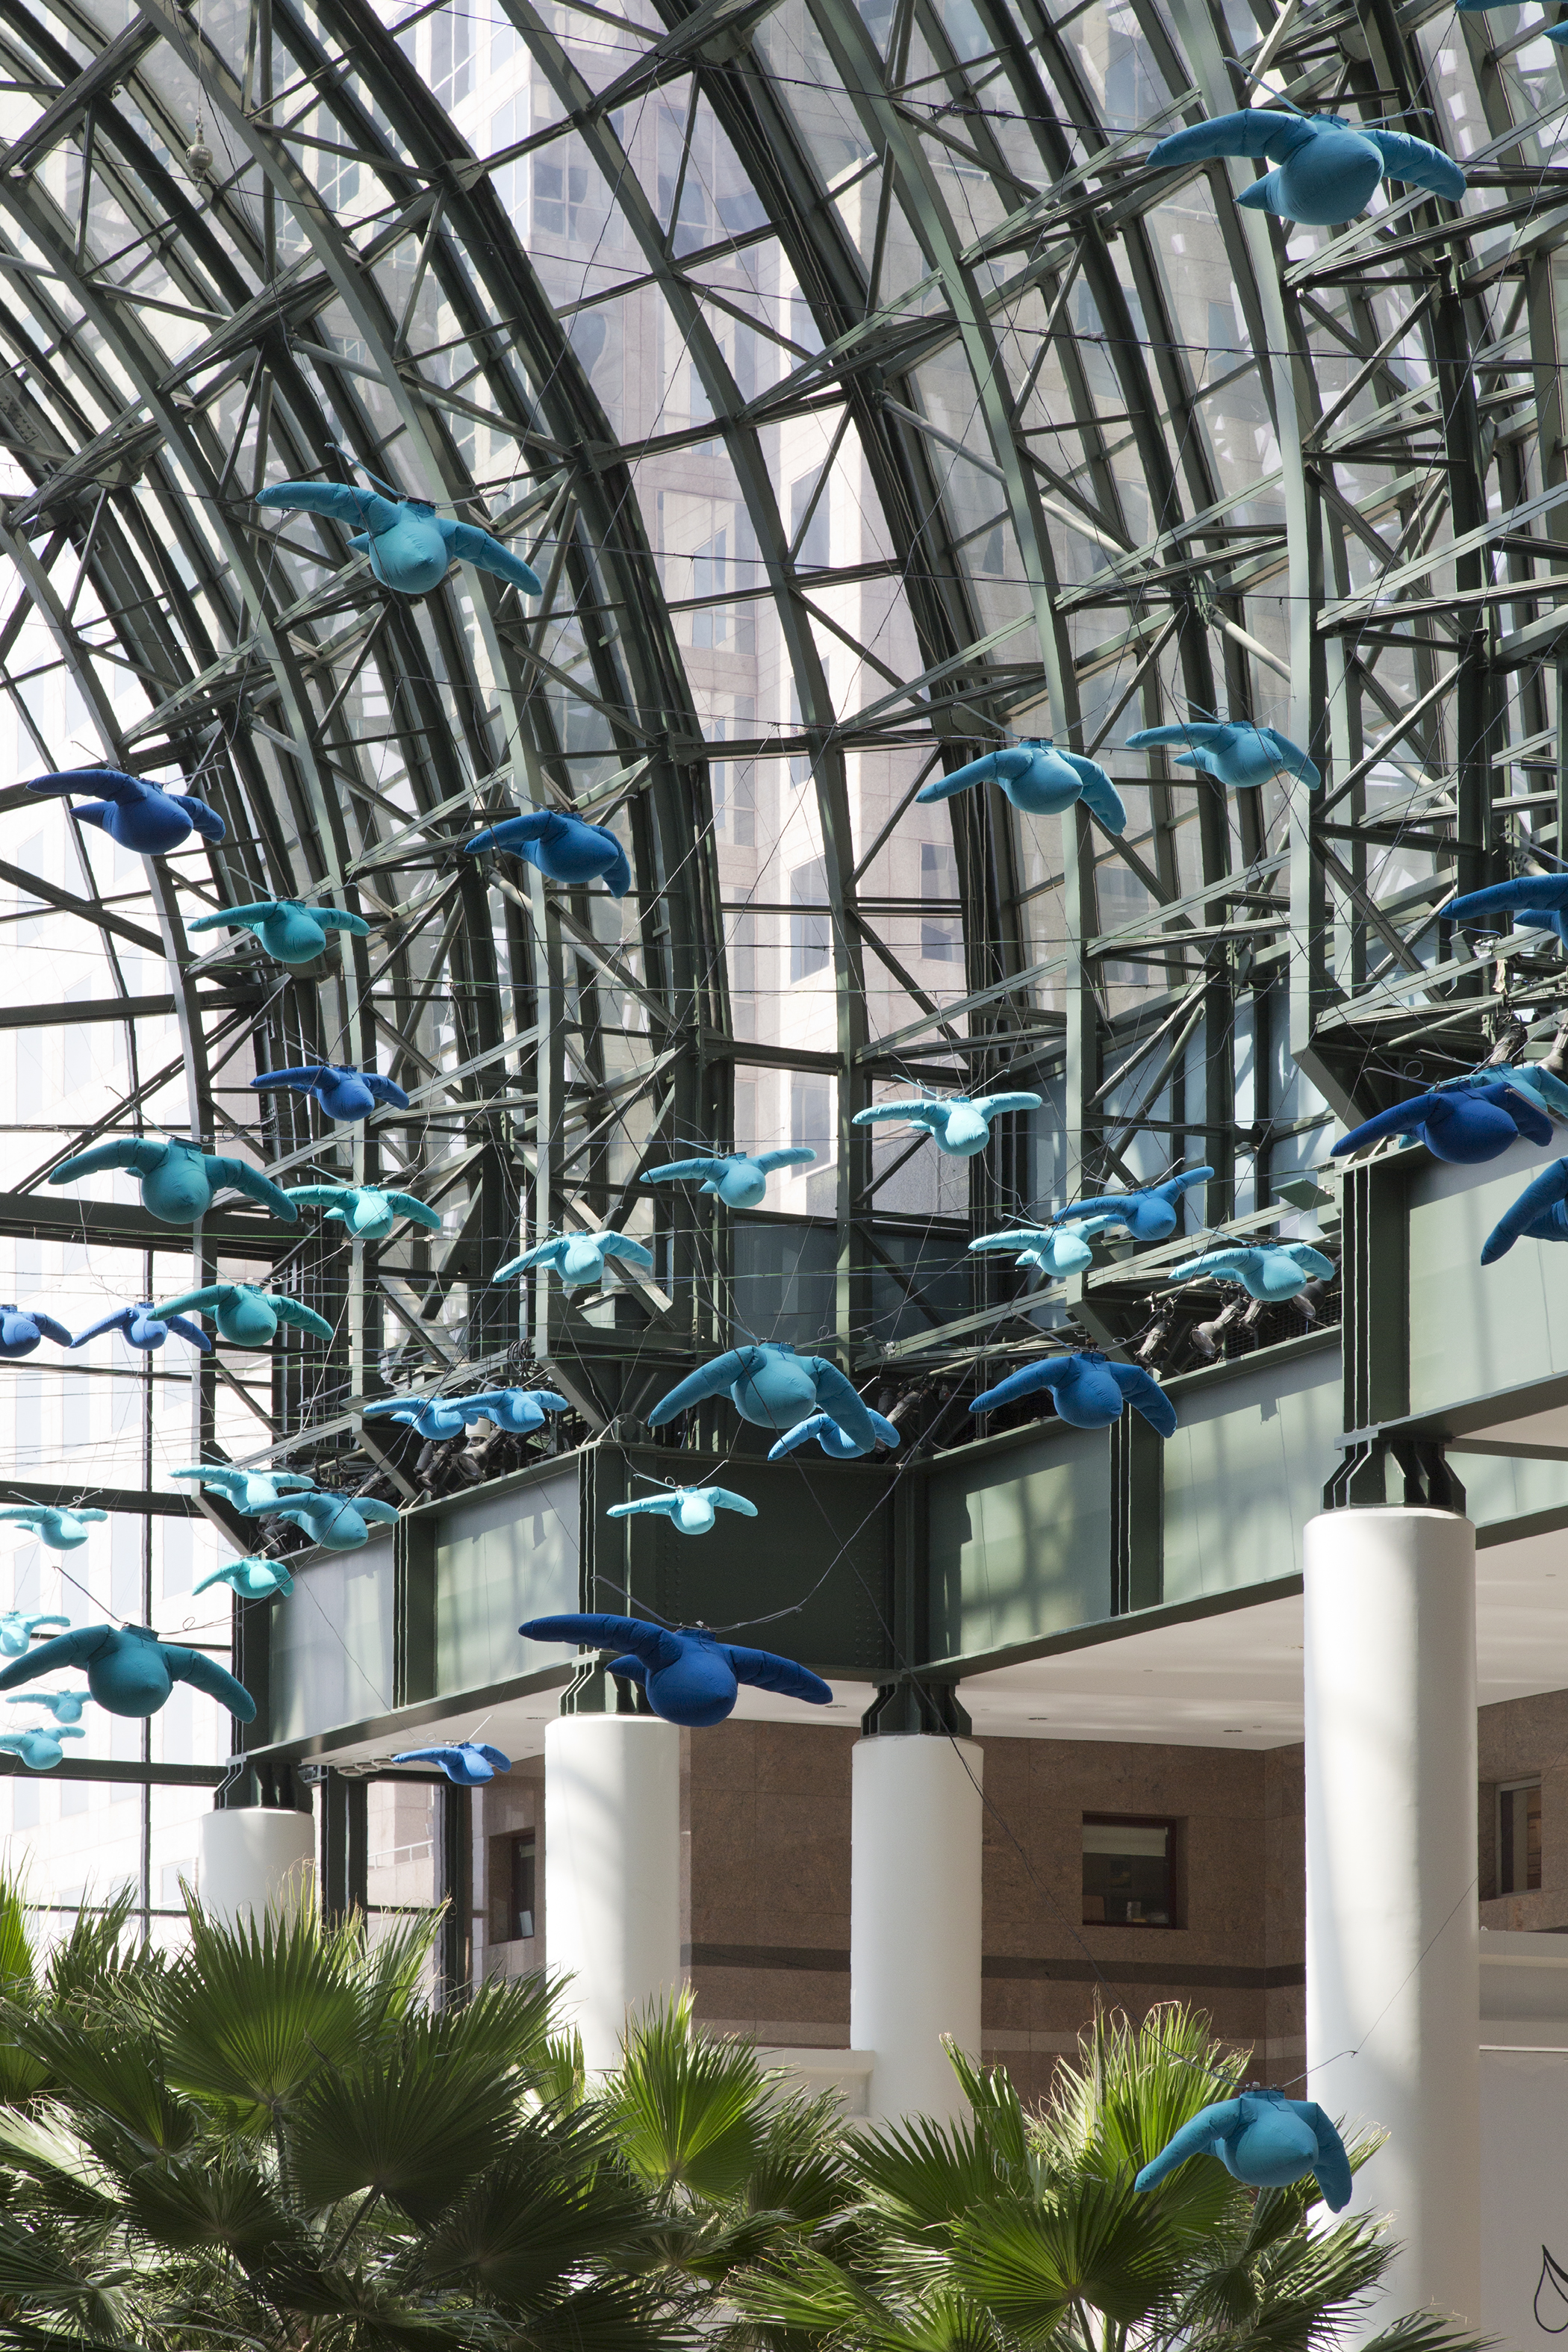 """""""Air Pressure,"""" a kinetic sculptural installation made out of fabric birds, is shown in the Winter Garden of Brookfield Place, New York. It was created by the Toronto-based artist collective Studio F Minus."""